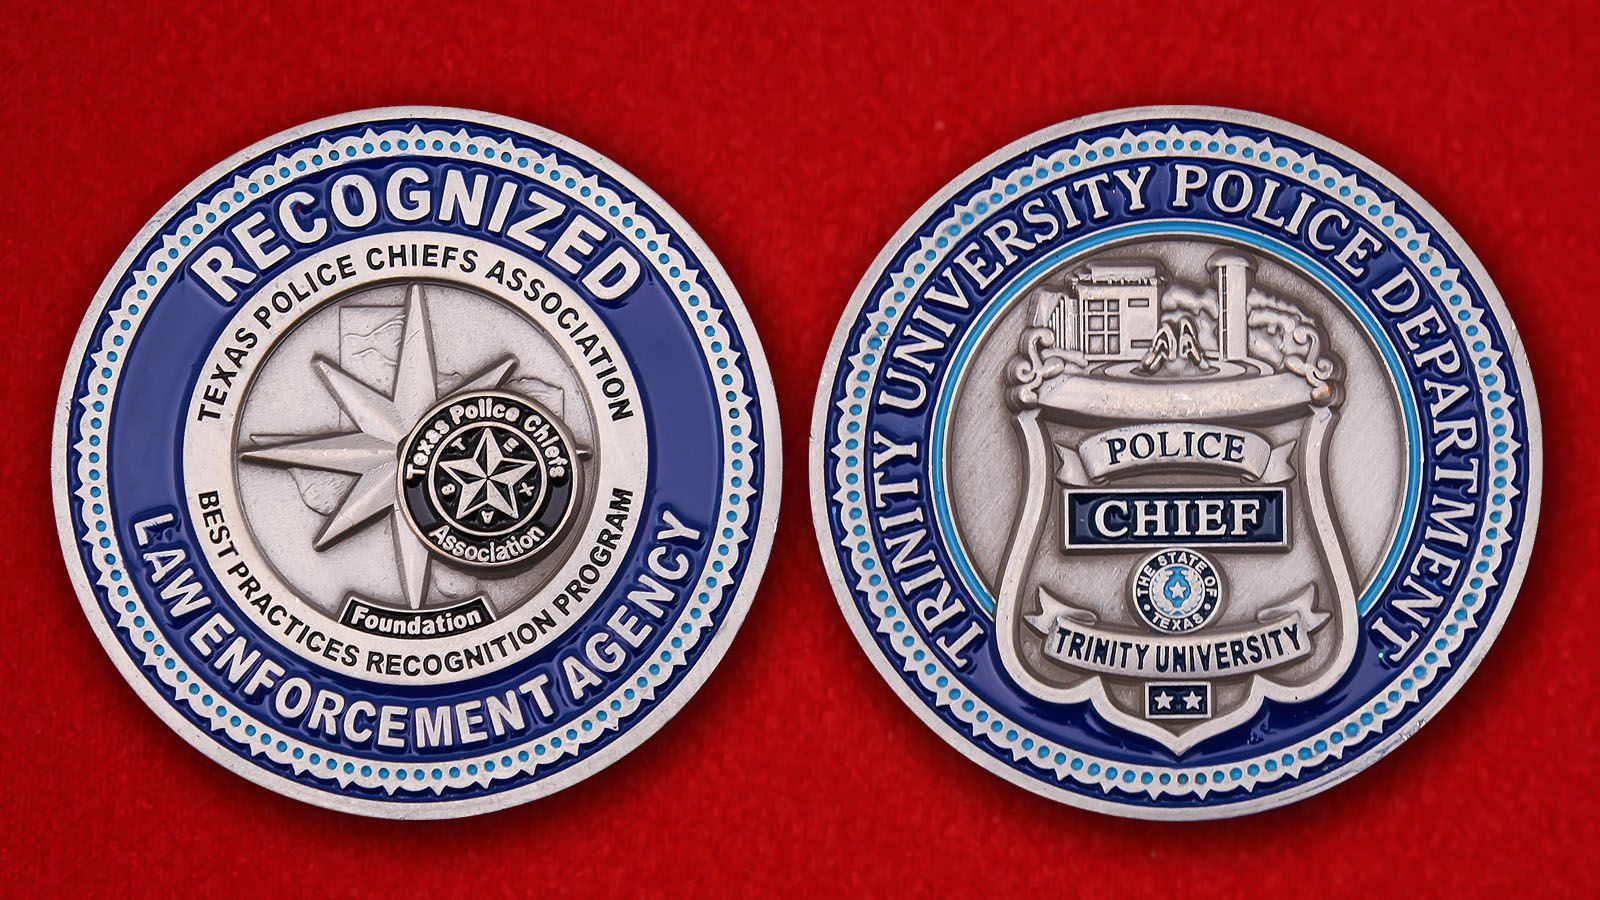 Challenge Coin Рolice Сhief of the Trinity University - obverse and reverse